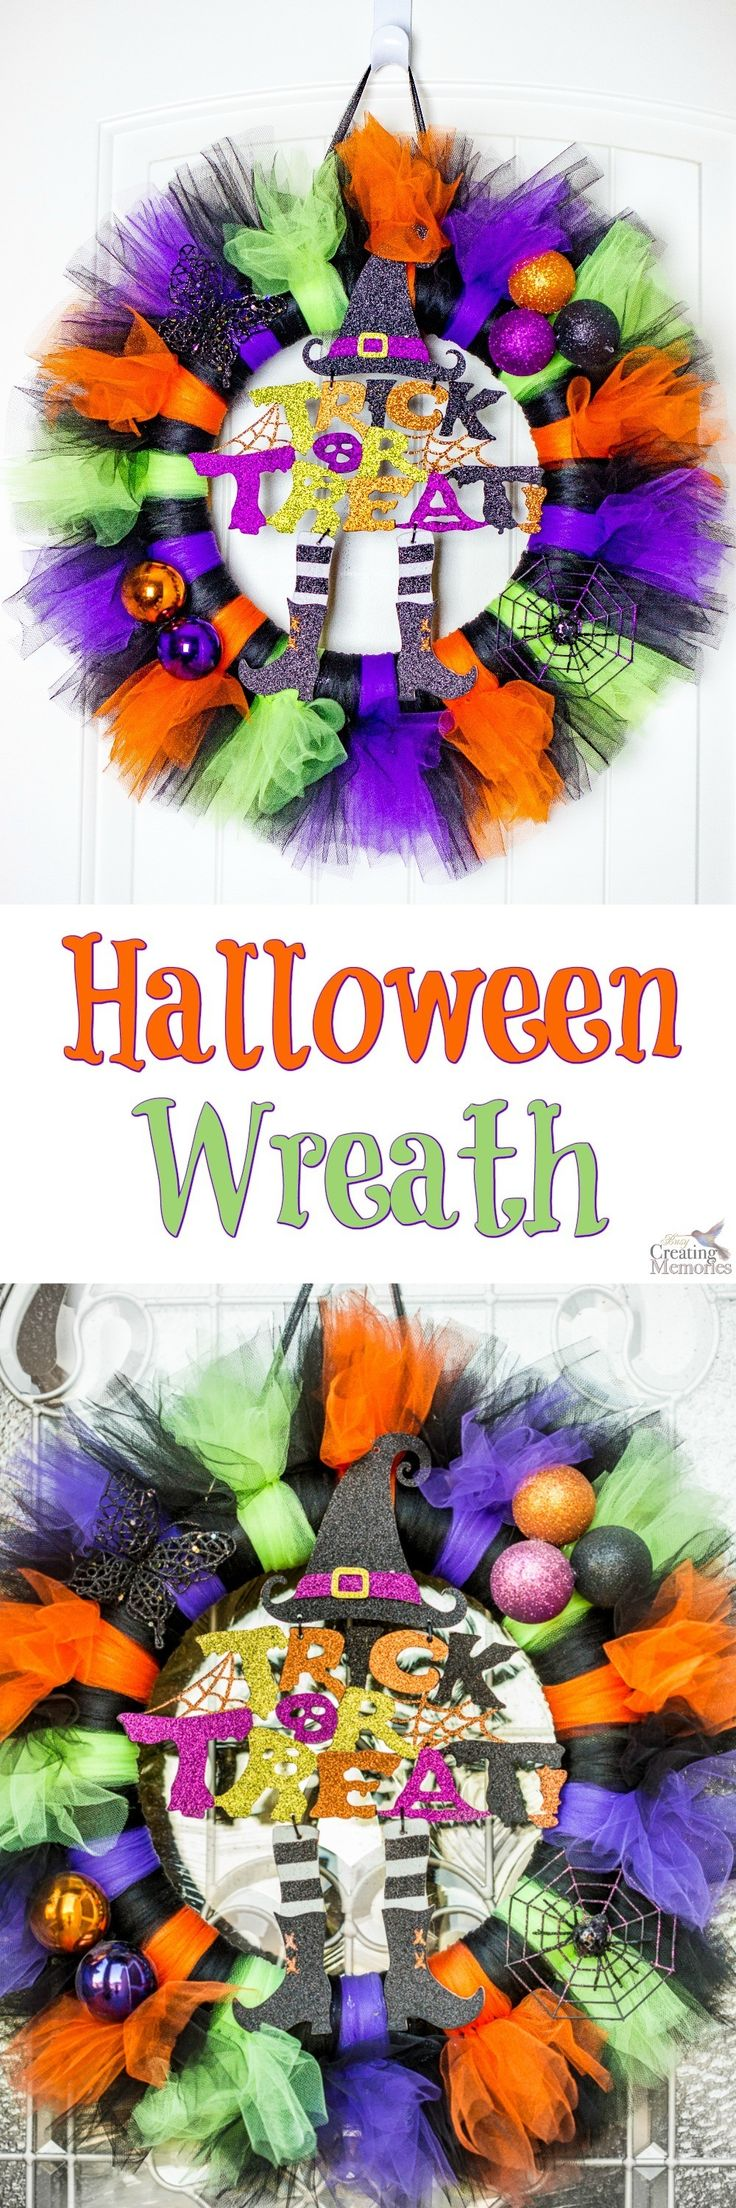 Get your house Spooky ready with this easy to make Tulle Tutu Halloween Wreath! A simple craft you can put together in under 30 minutes! Made of Tulle, Halloween sign and simple Halloween craft items.  via @2creatememories